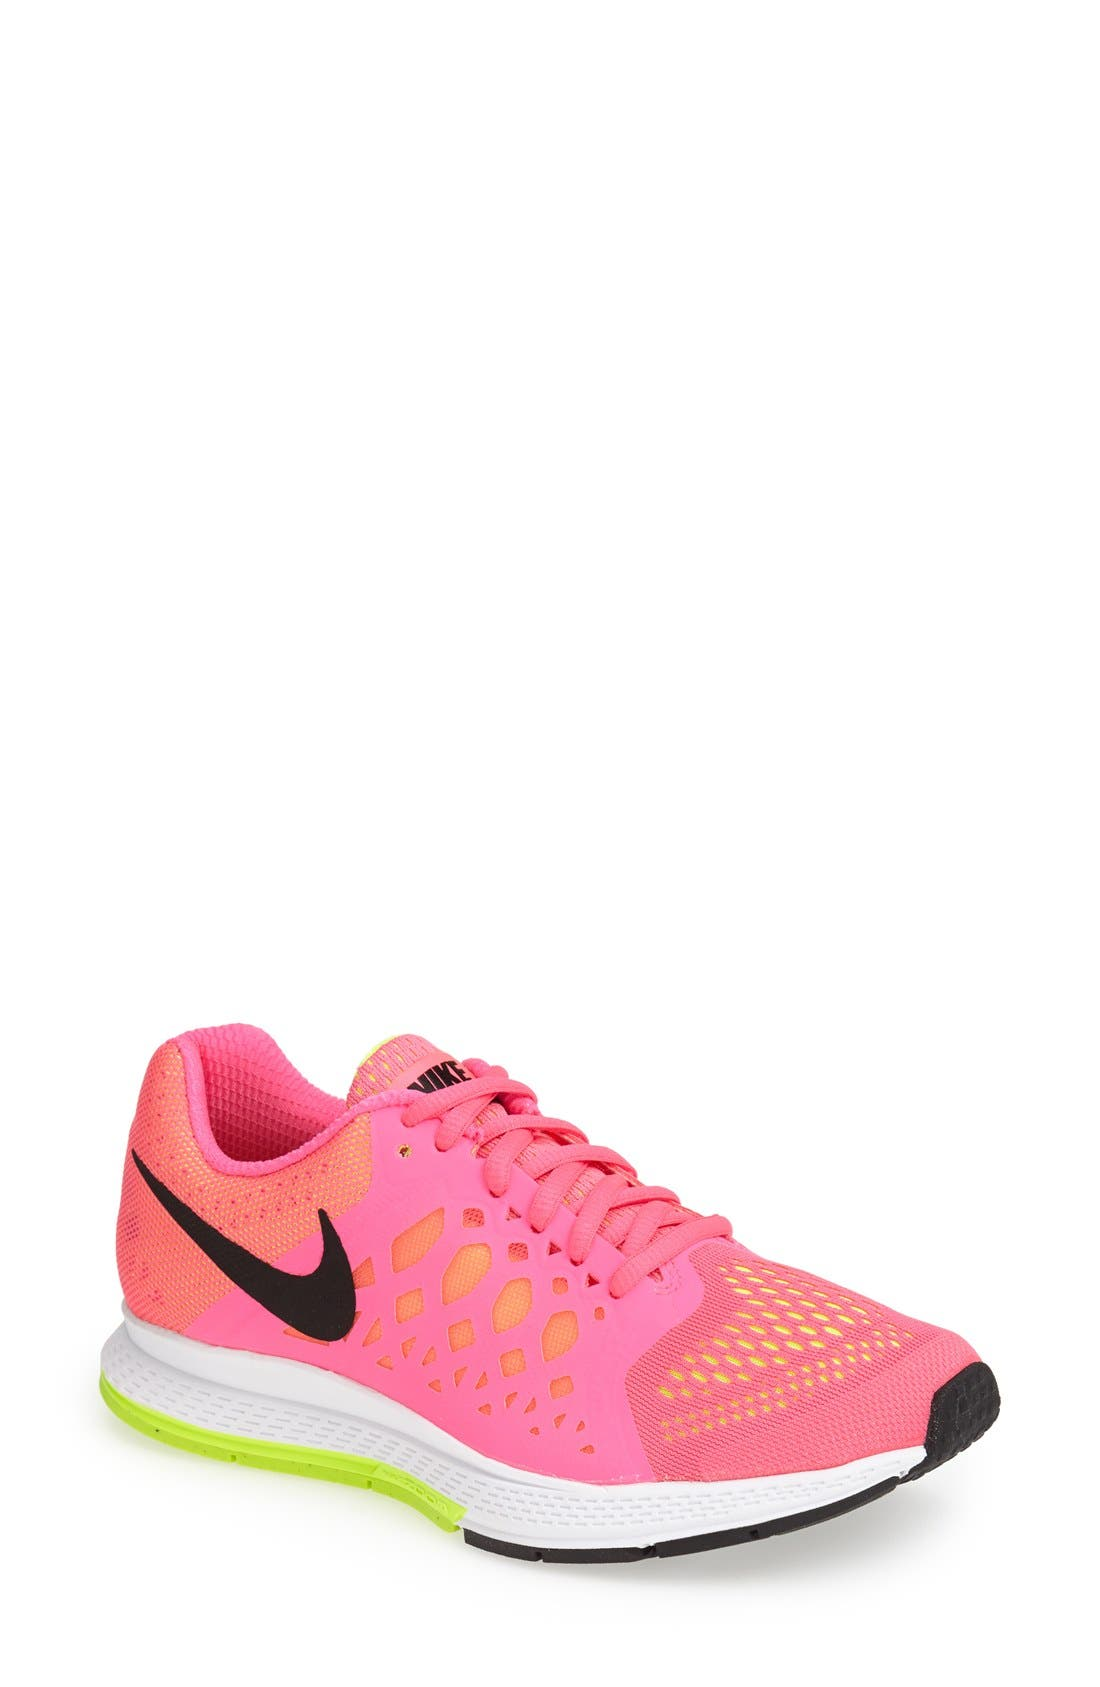 Main Image - Nike 'Air Pegasus 31' Running Shoe (Women)